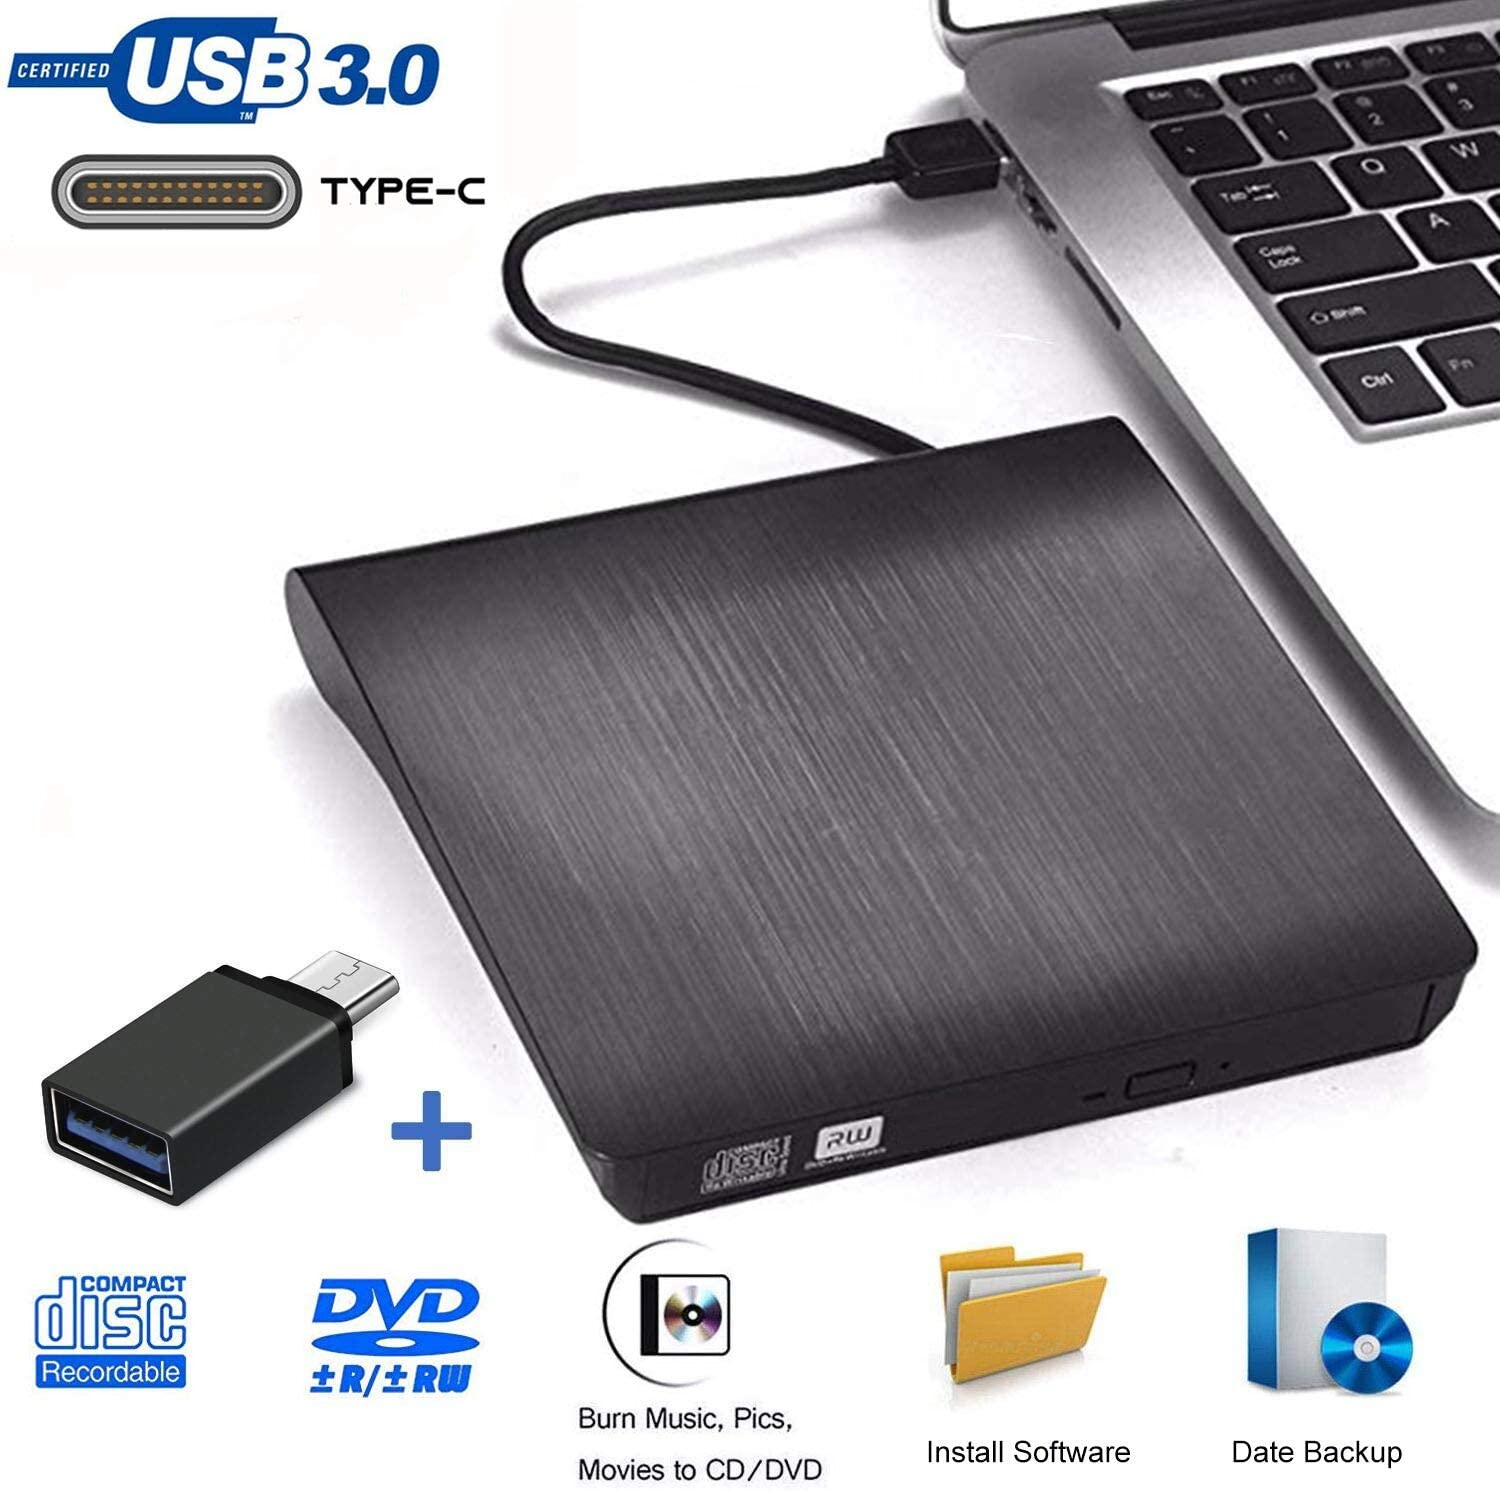 Grabadora DVD Externa, iAmotus Unidades CD/DVD Externas USB 3.0 Lector Grabadora Y Tipo-c Grabadora Externa Ultra Slim Portátil para Windows 10 7/8 / Vista/XP/Mac OS/Macbook/Desktop Linux, Laptop